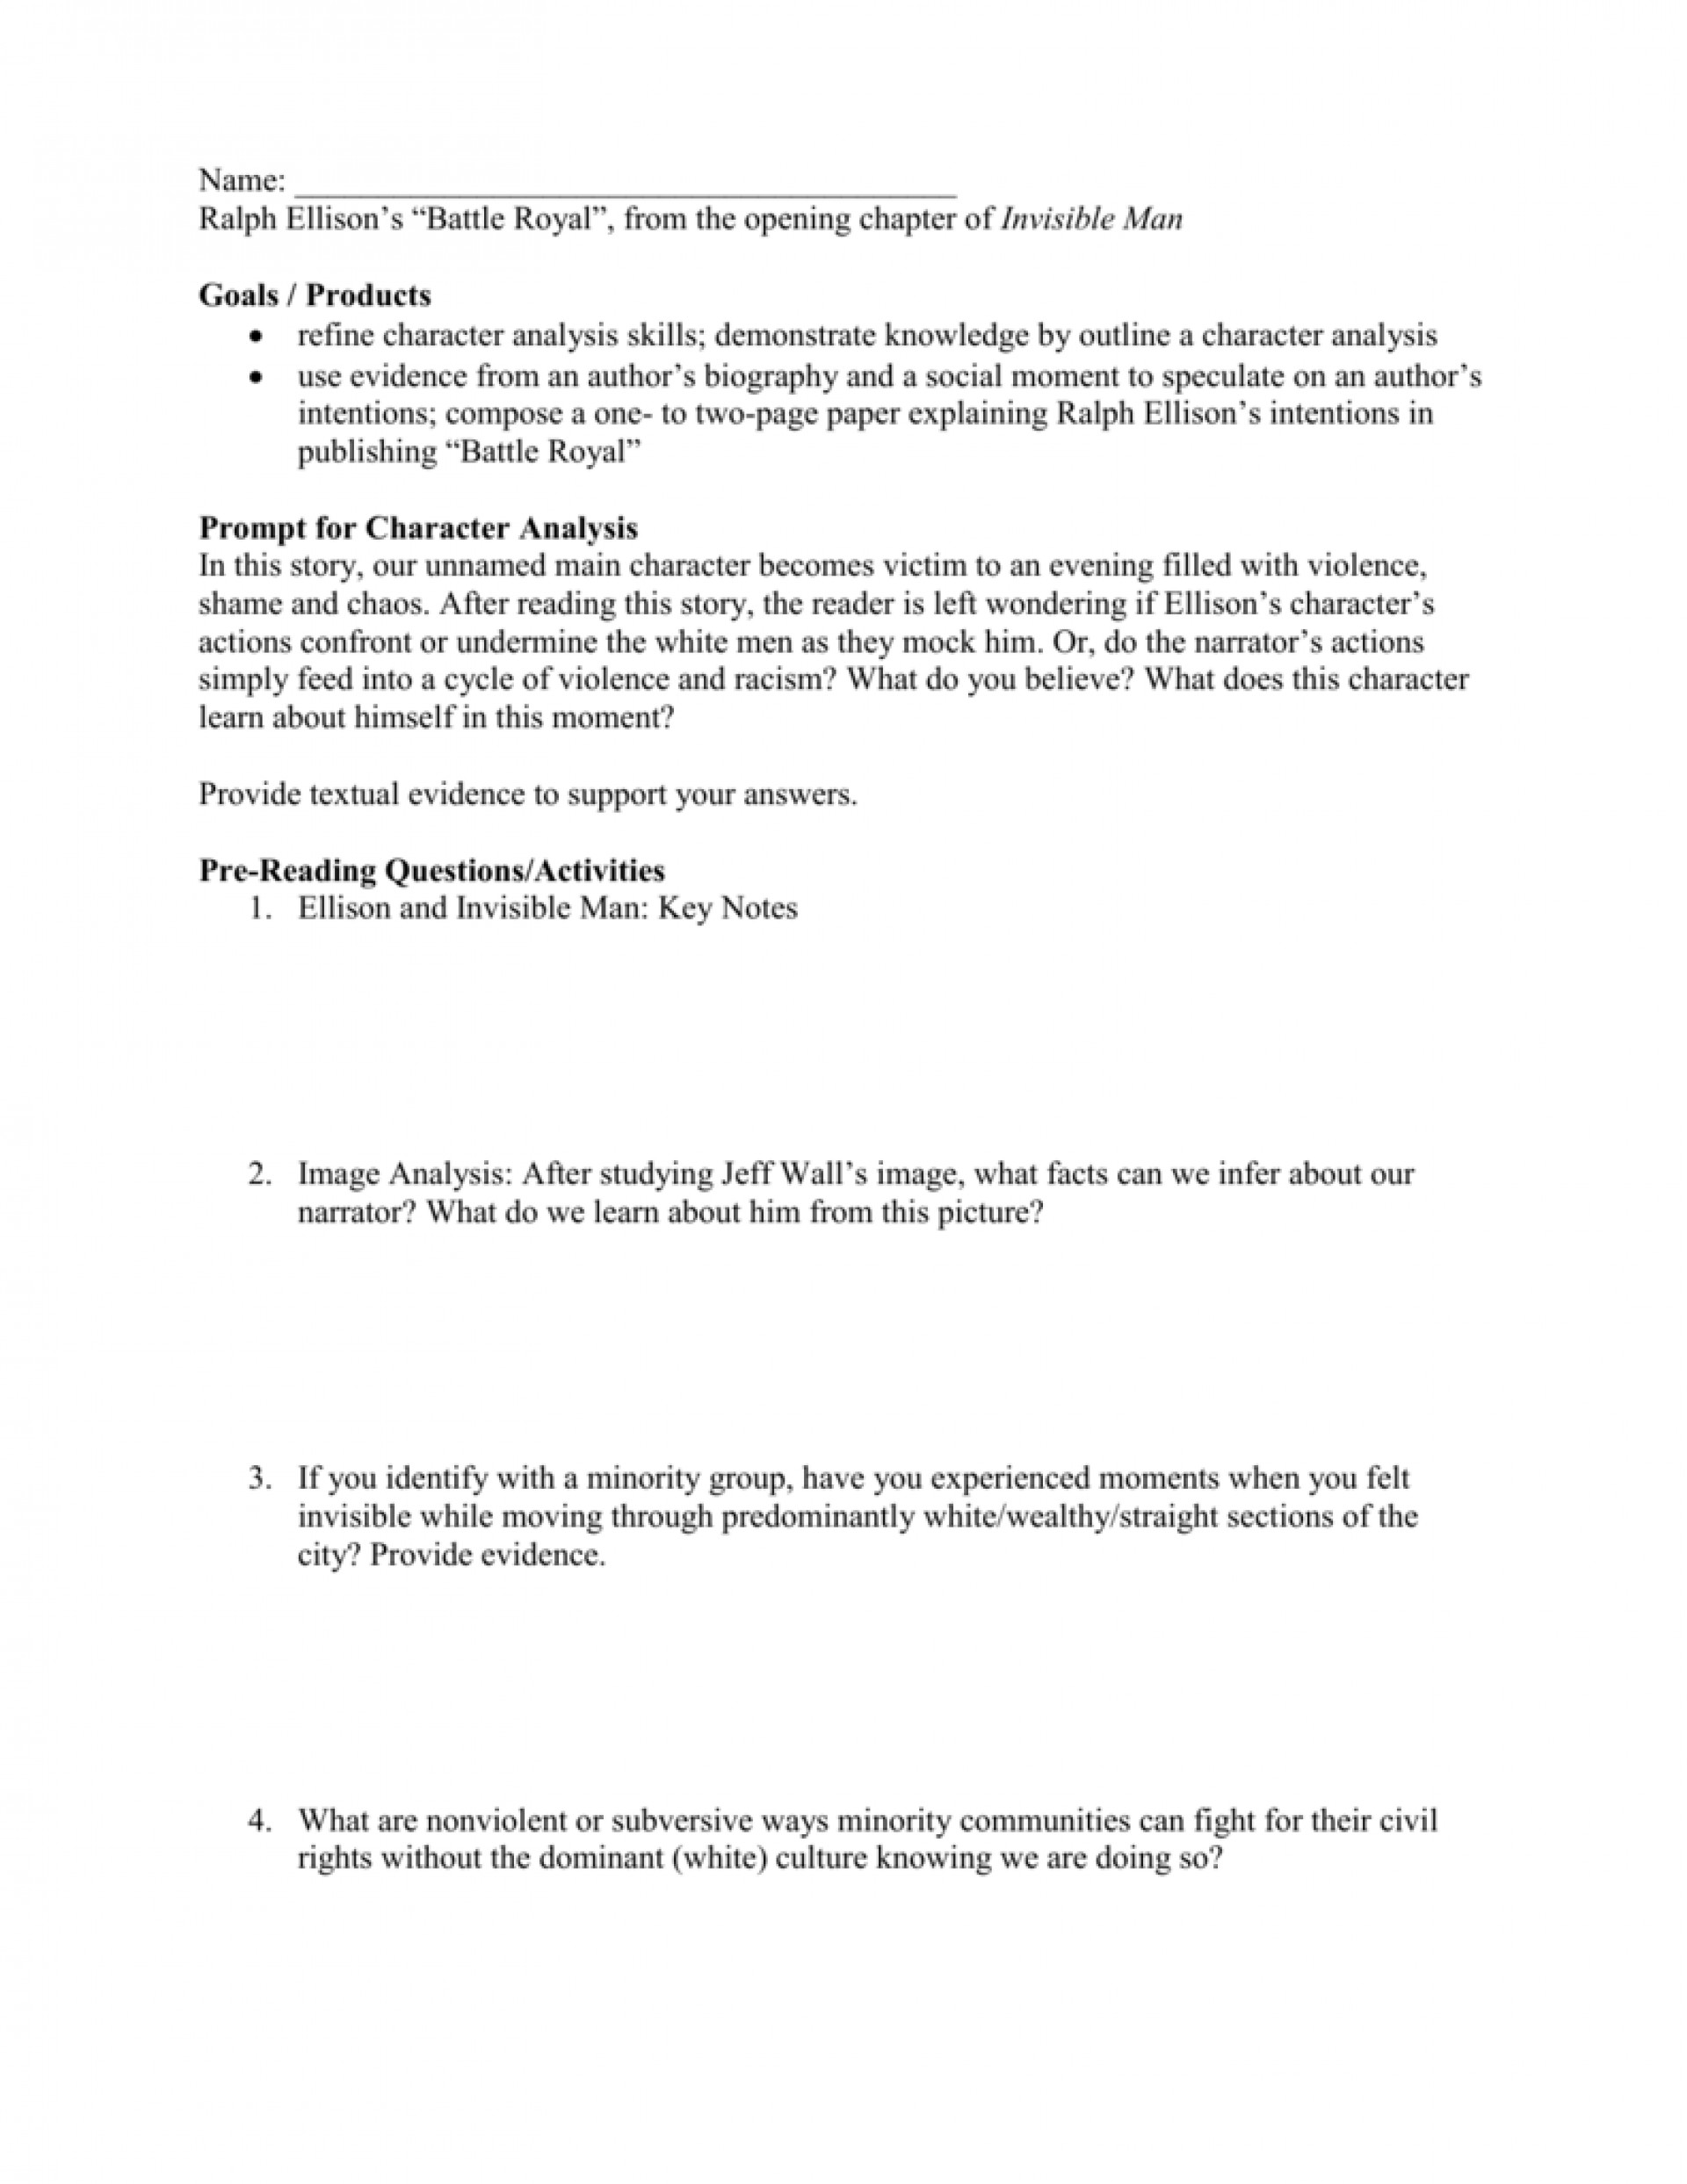 009 Research Paper Battle Royale Topics Royal Literary Analysis20ay Conclusion Prompts Argumentative20 Argumentative On Singular Literature 1920